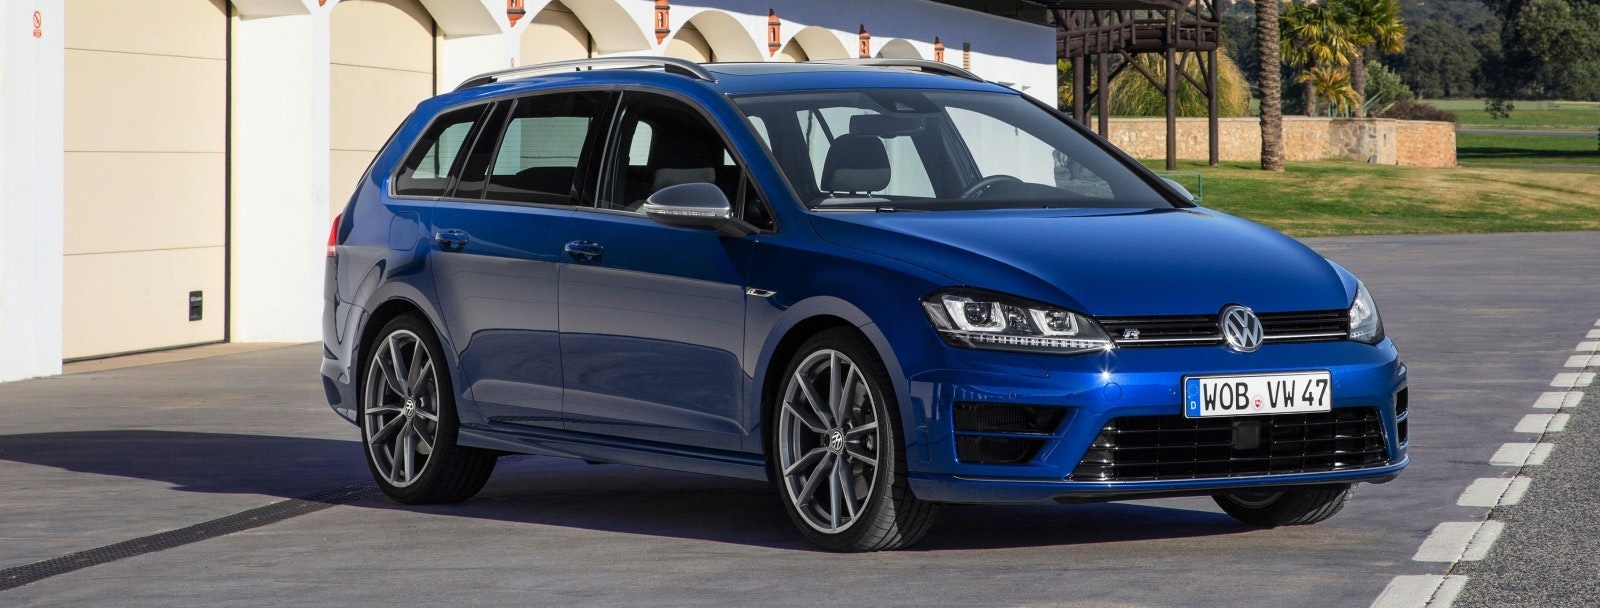 Blue VW Golf R Estate